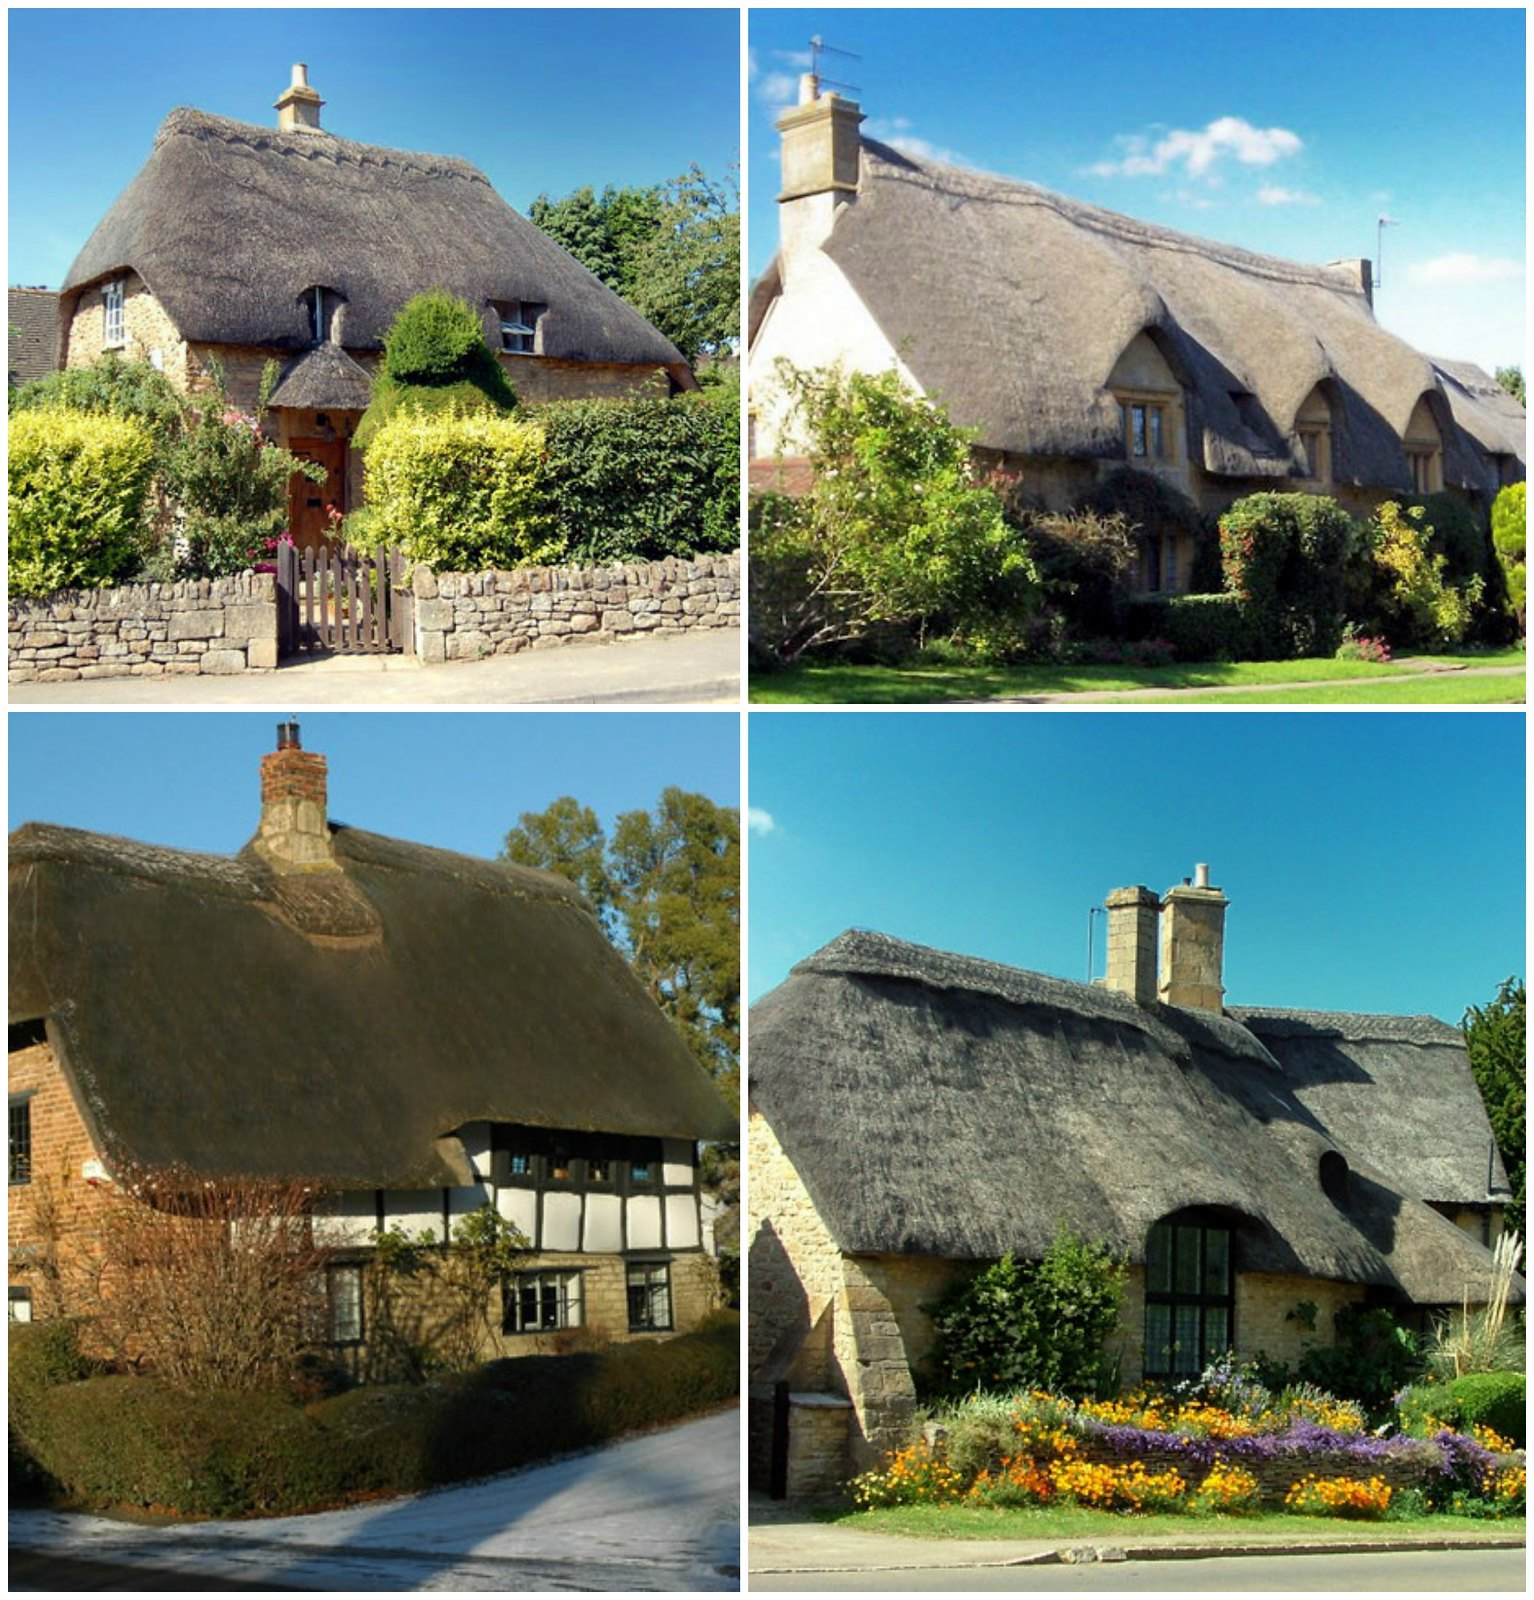 Thatched Cottages in Gloucester